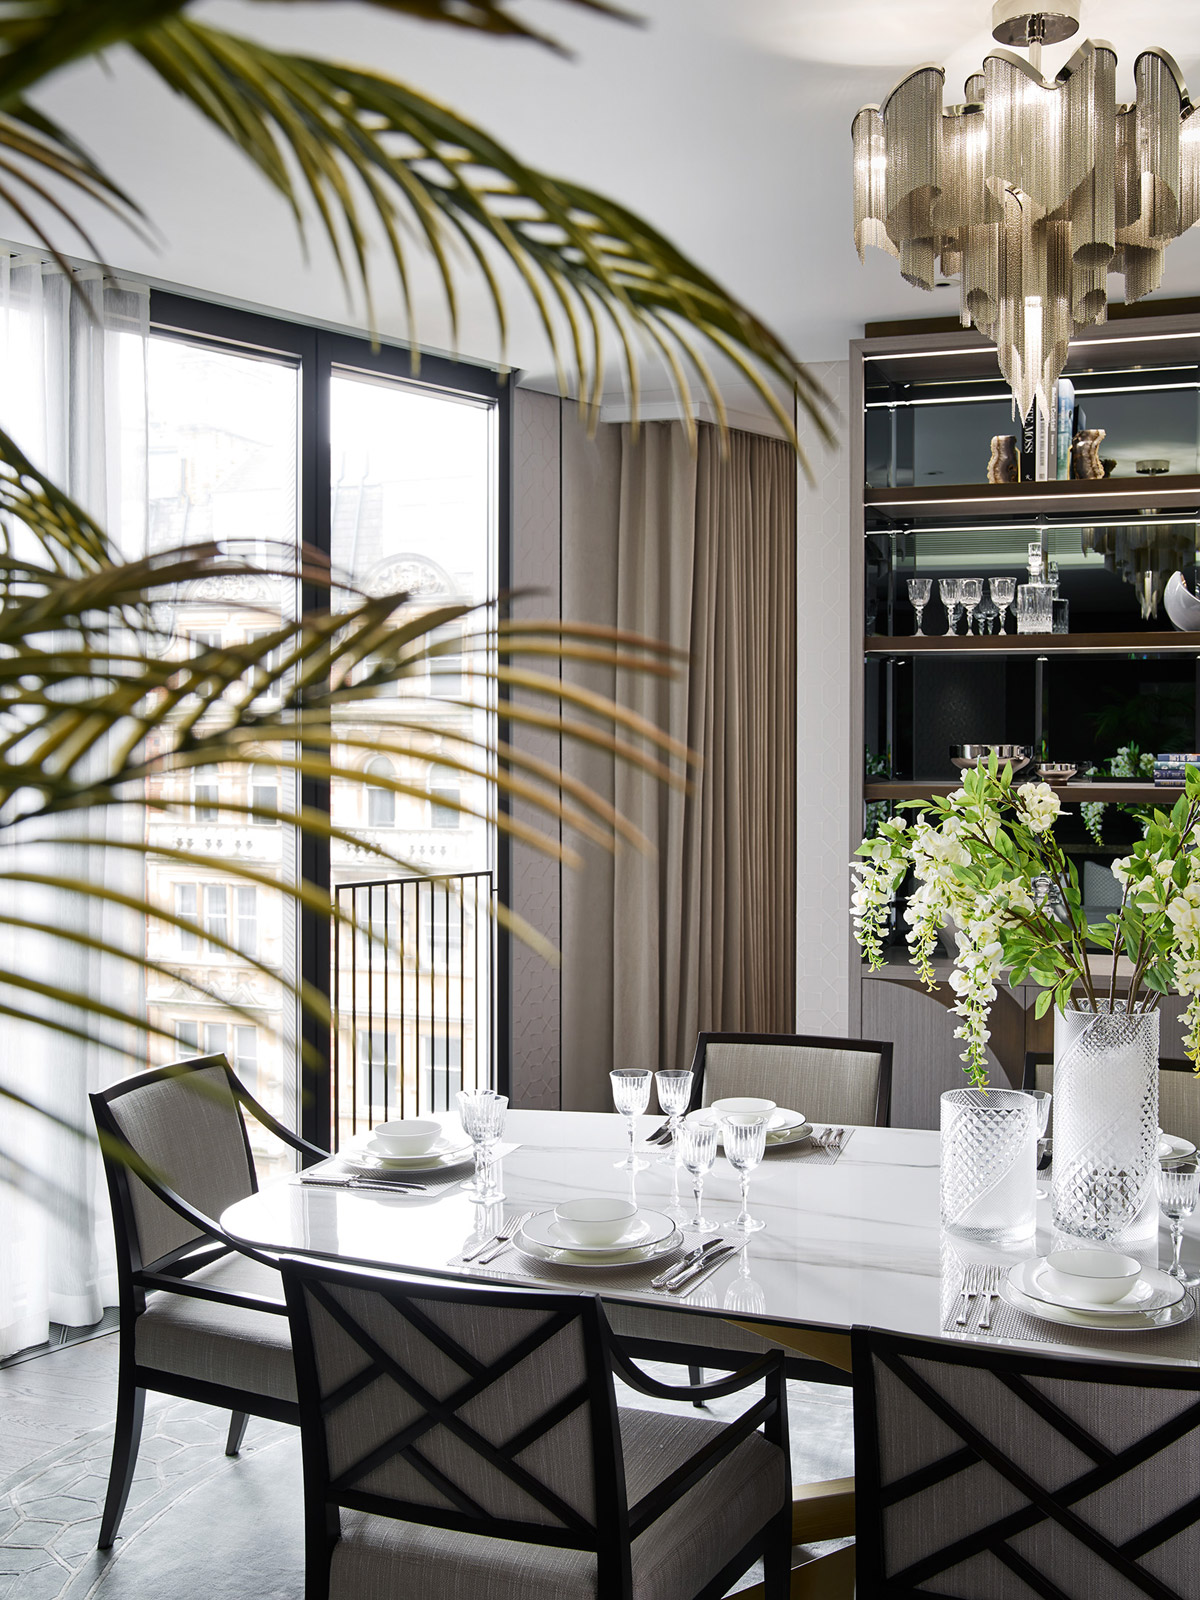 Elicyon, Porject Vera for One Hyde Park residential design project images for SBID interior design blog, Project of the Week